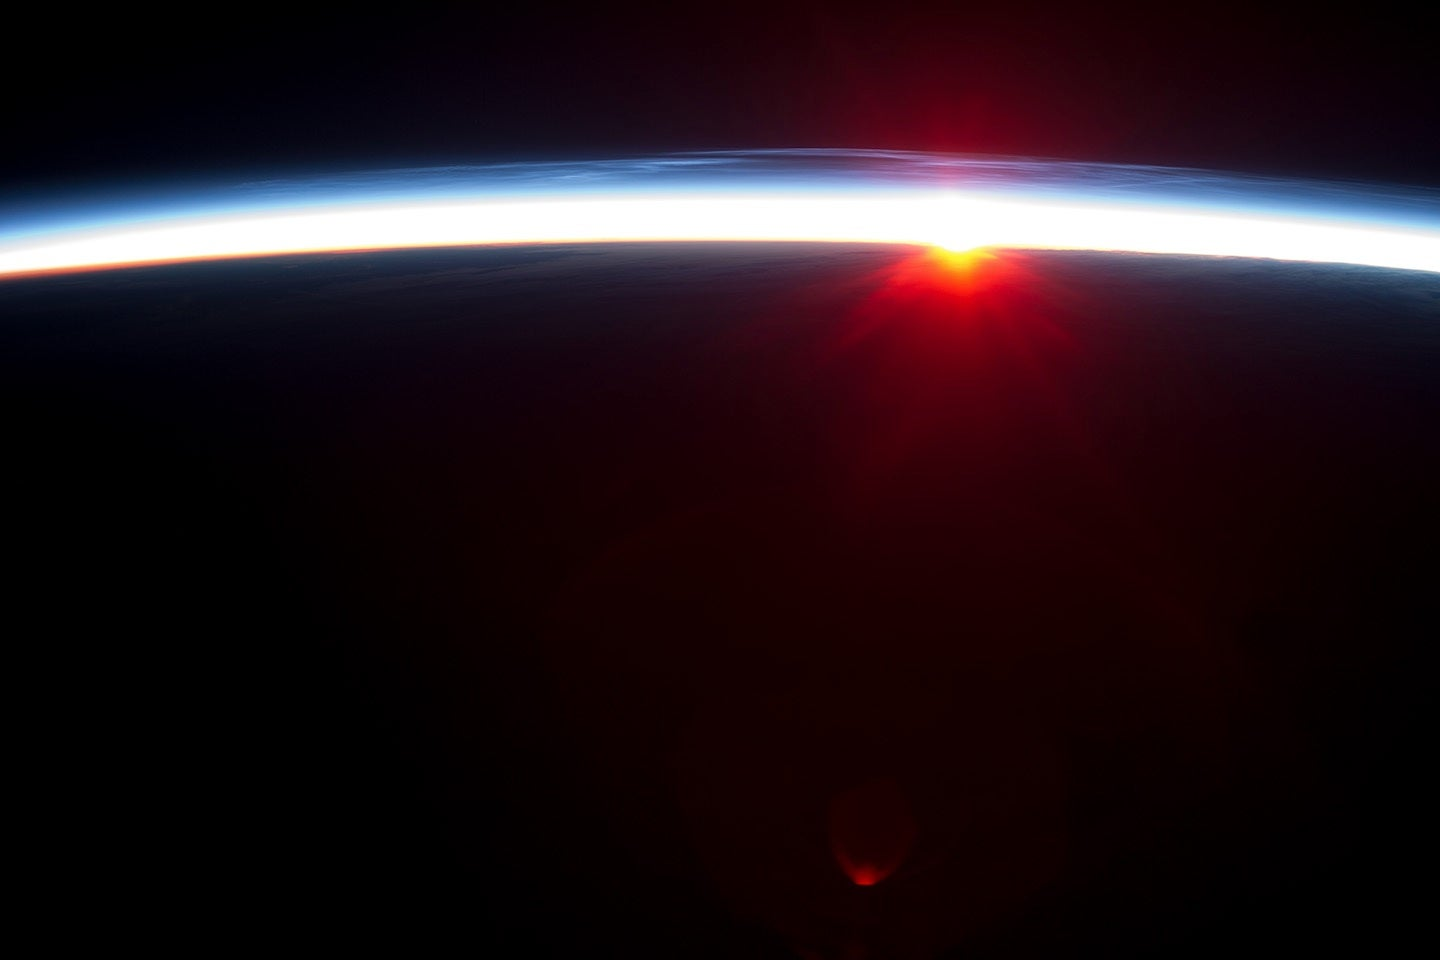 Big Pic: Sunrise Over A Dark Earth, As Seen From The ISS